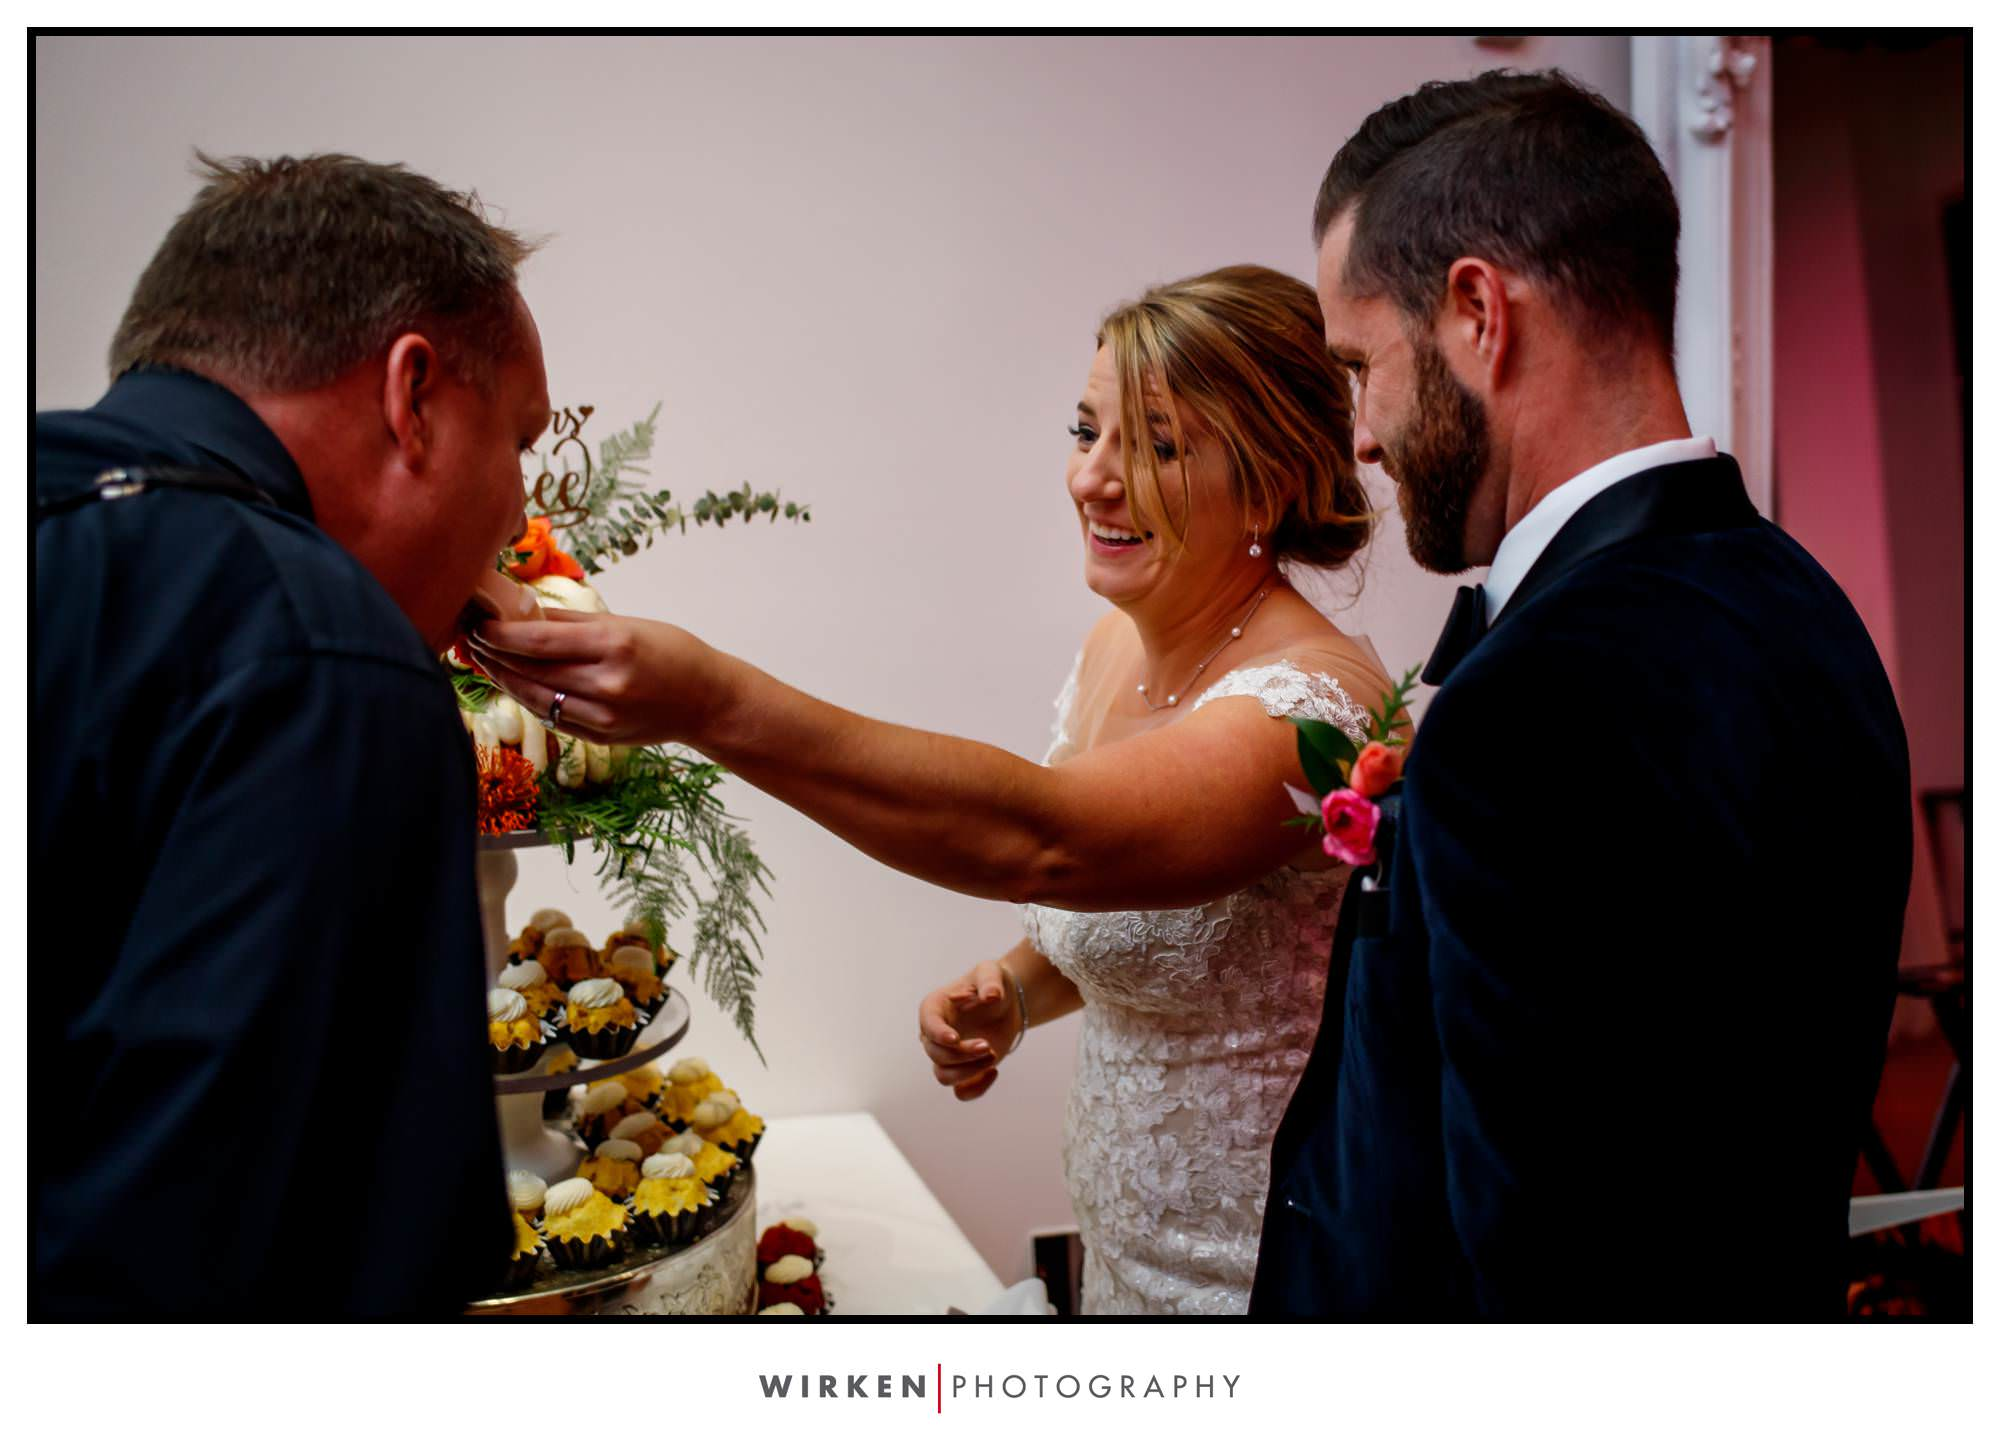 Leah feeds Kansas City wedding photographer Tyler Wirken a piece of wedding cake.